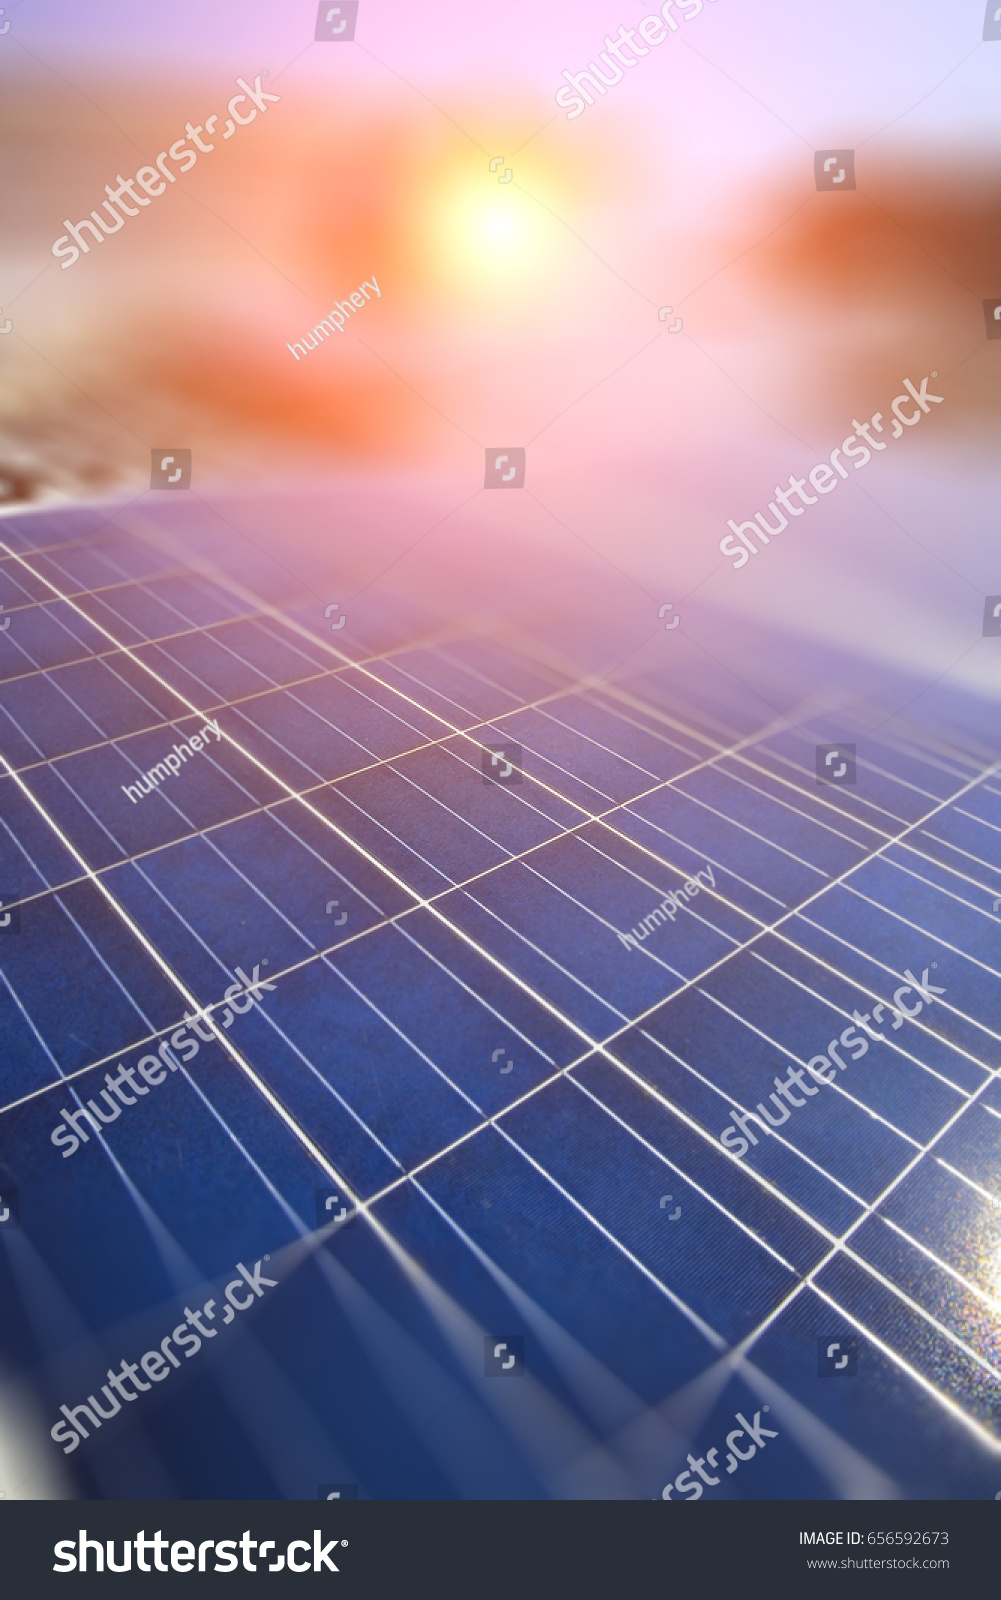 Solar Power Circuit Boards Sun Blue Stock Photo Edit Now 656592673 Energy In The Hue Clean Background Picture